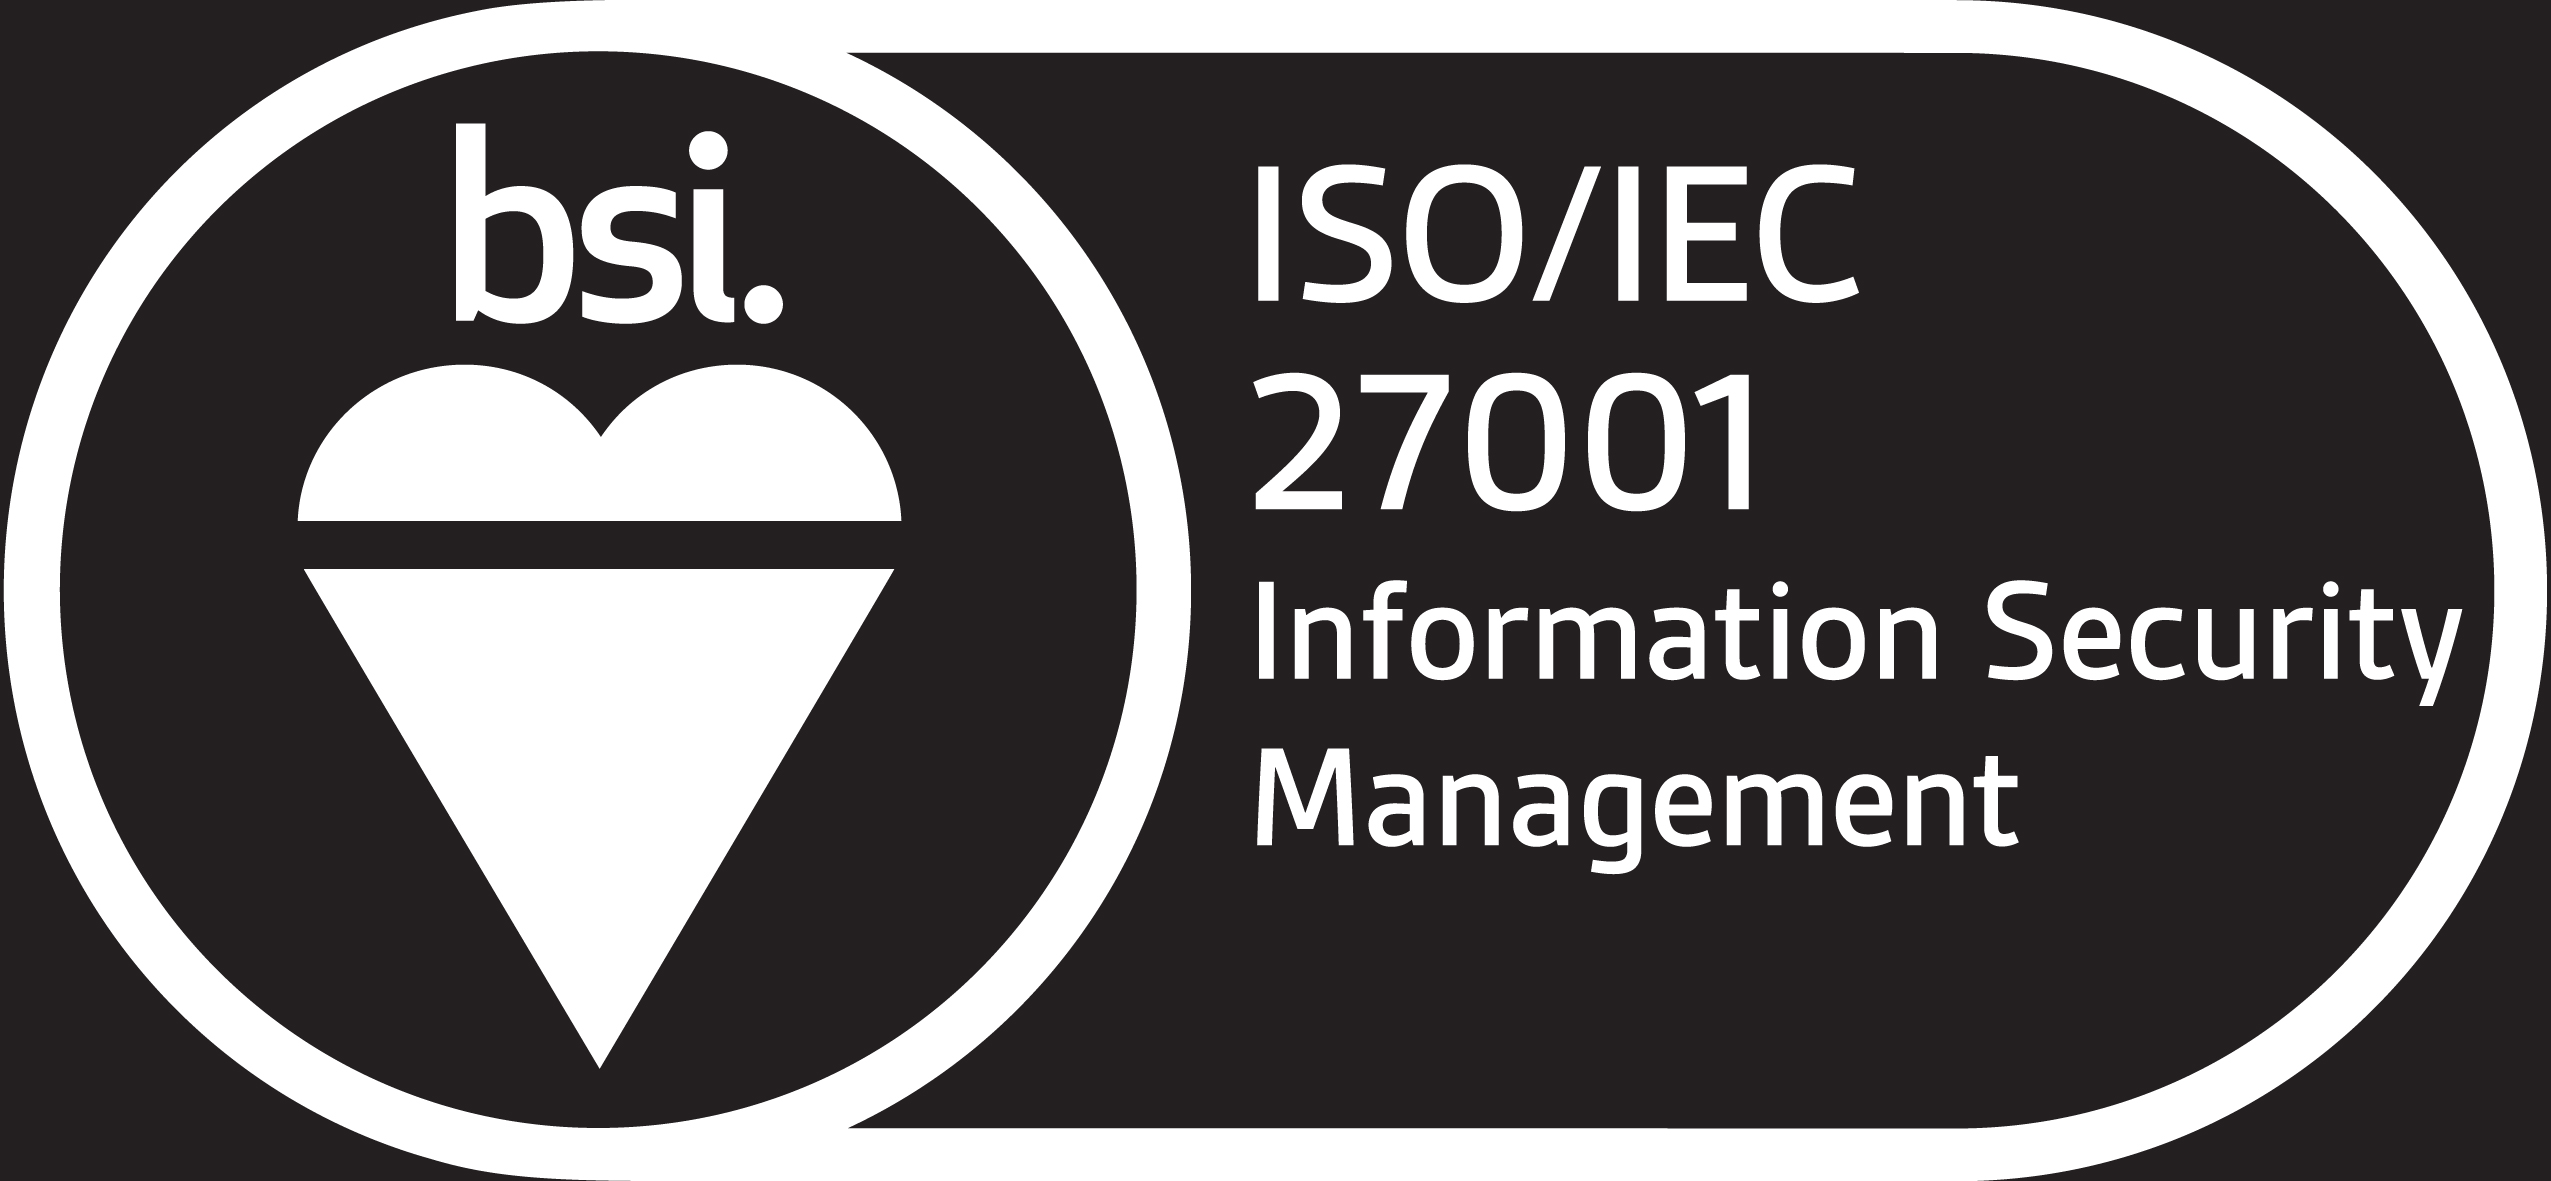 Information Security accredited